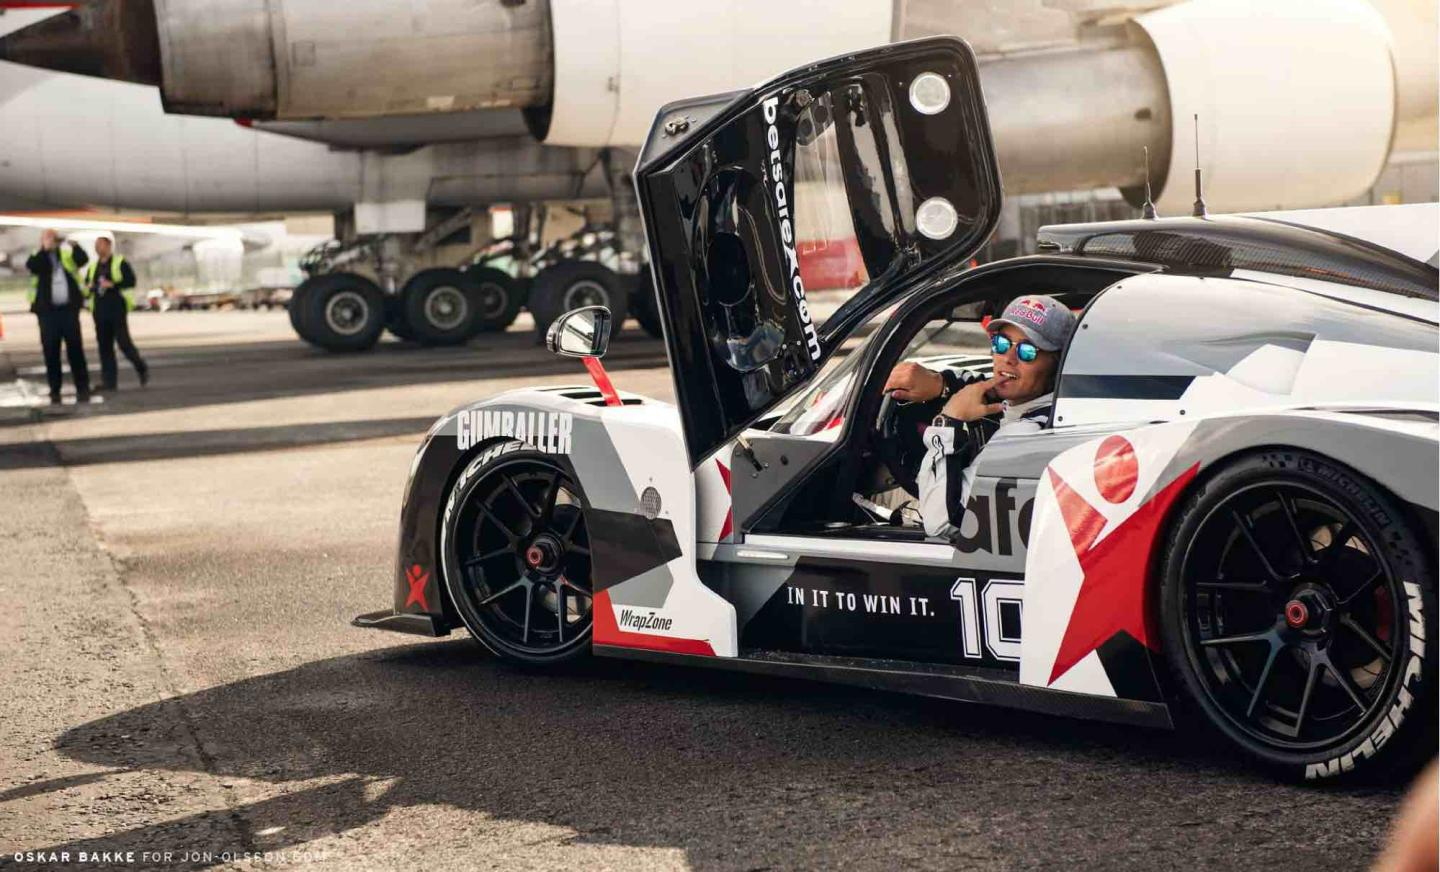 An archetypal mix of a race-car lover, Gumballer, RedBull extreme-skier, and an independent watch enthusiast, Jon Olsson was one of the customers on my influencer programme 2012-2015 to represent the affluent millennials.